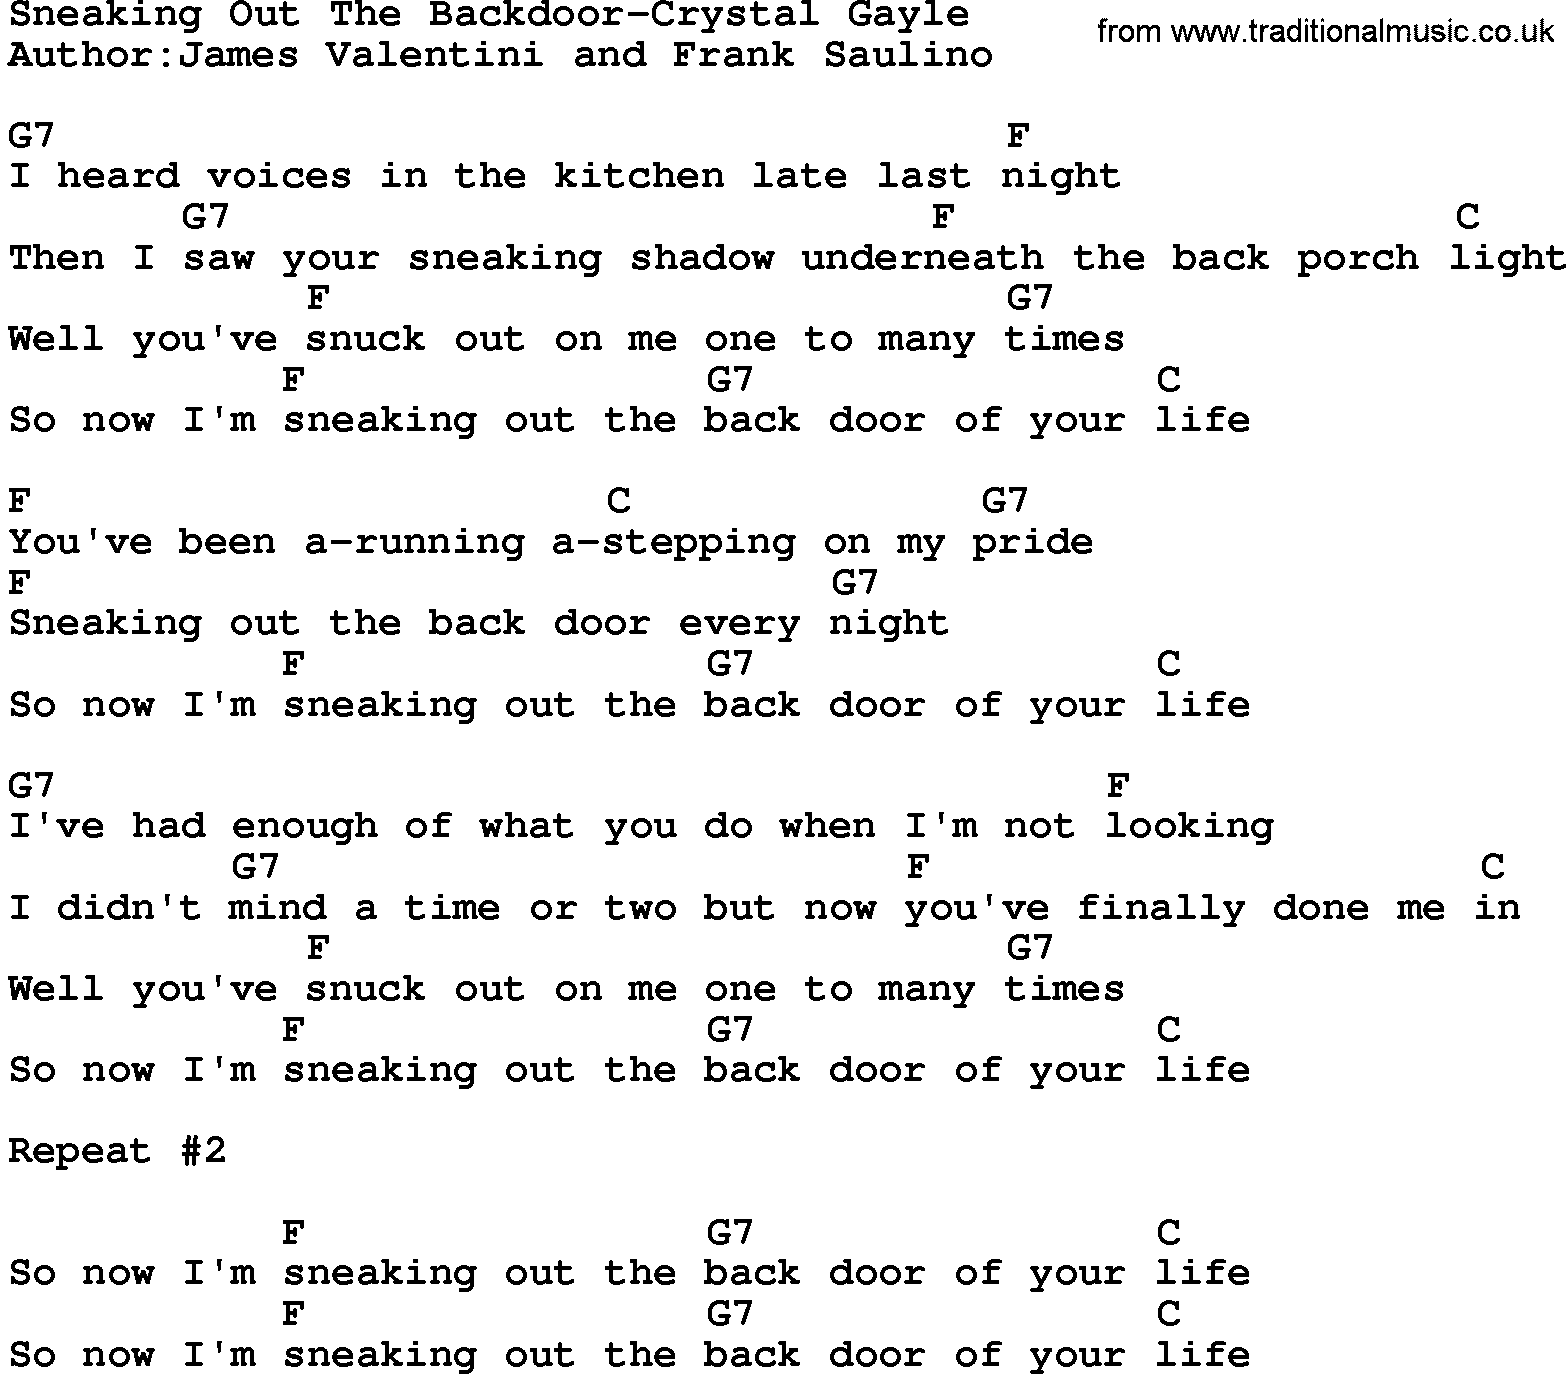 music song sneaking out the backdoor crystal gayle lyrics and chords